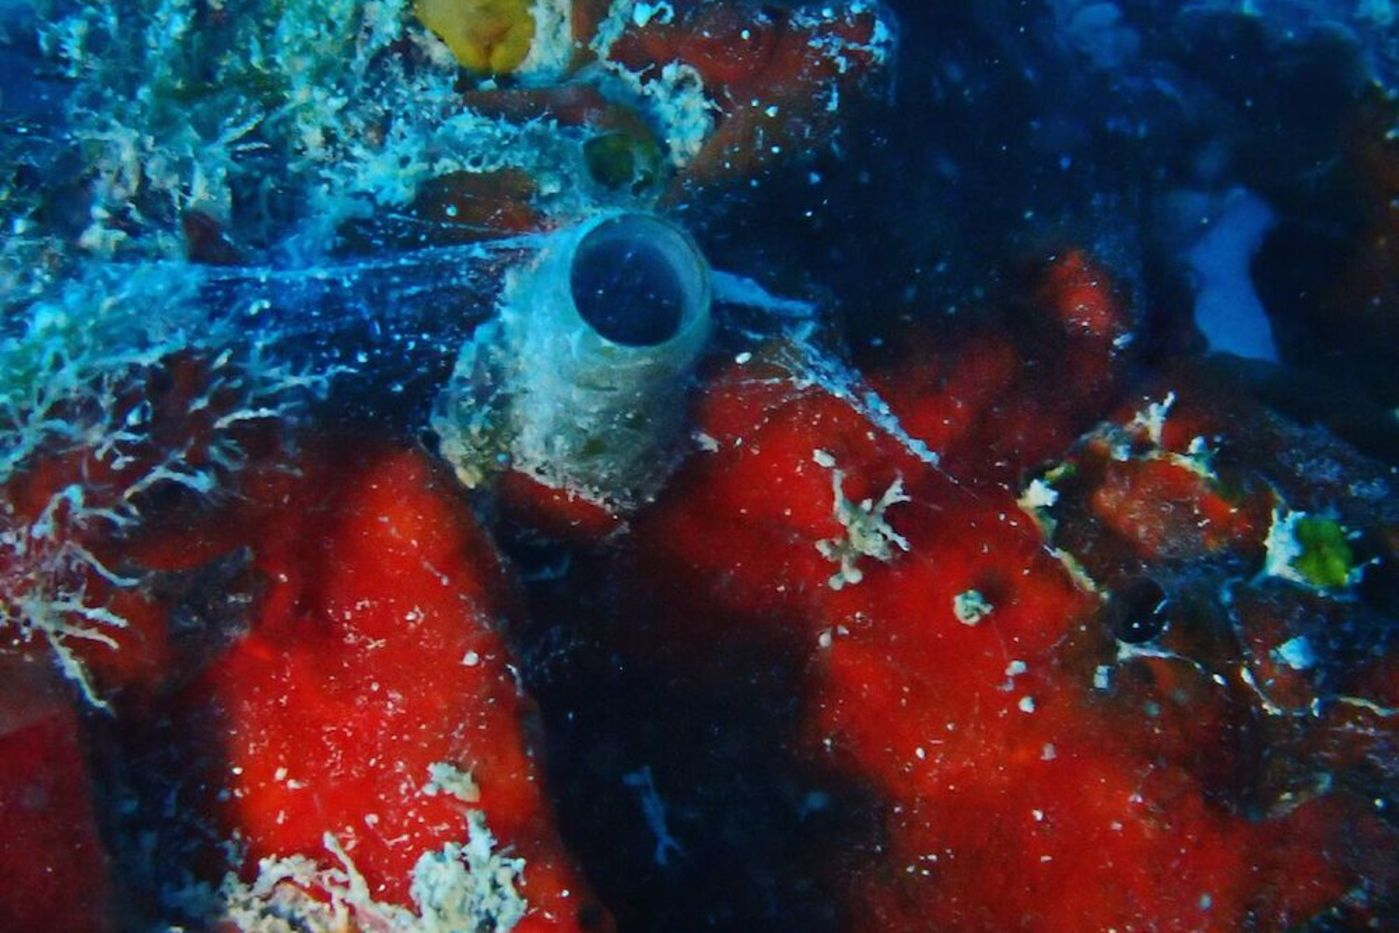 A tube-like structure in the middle of bright red coral, with a web coming out of it